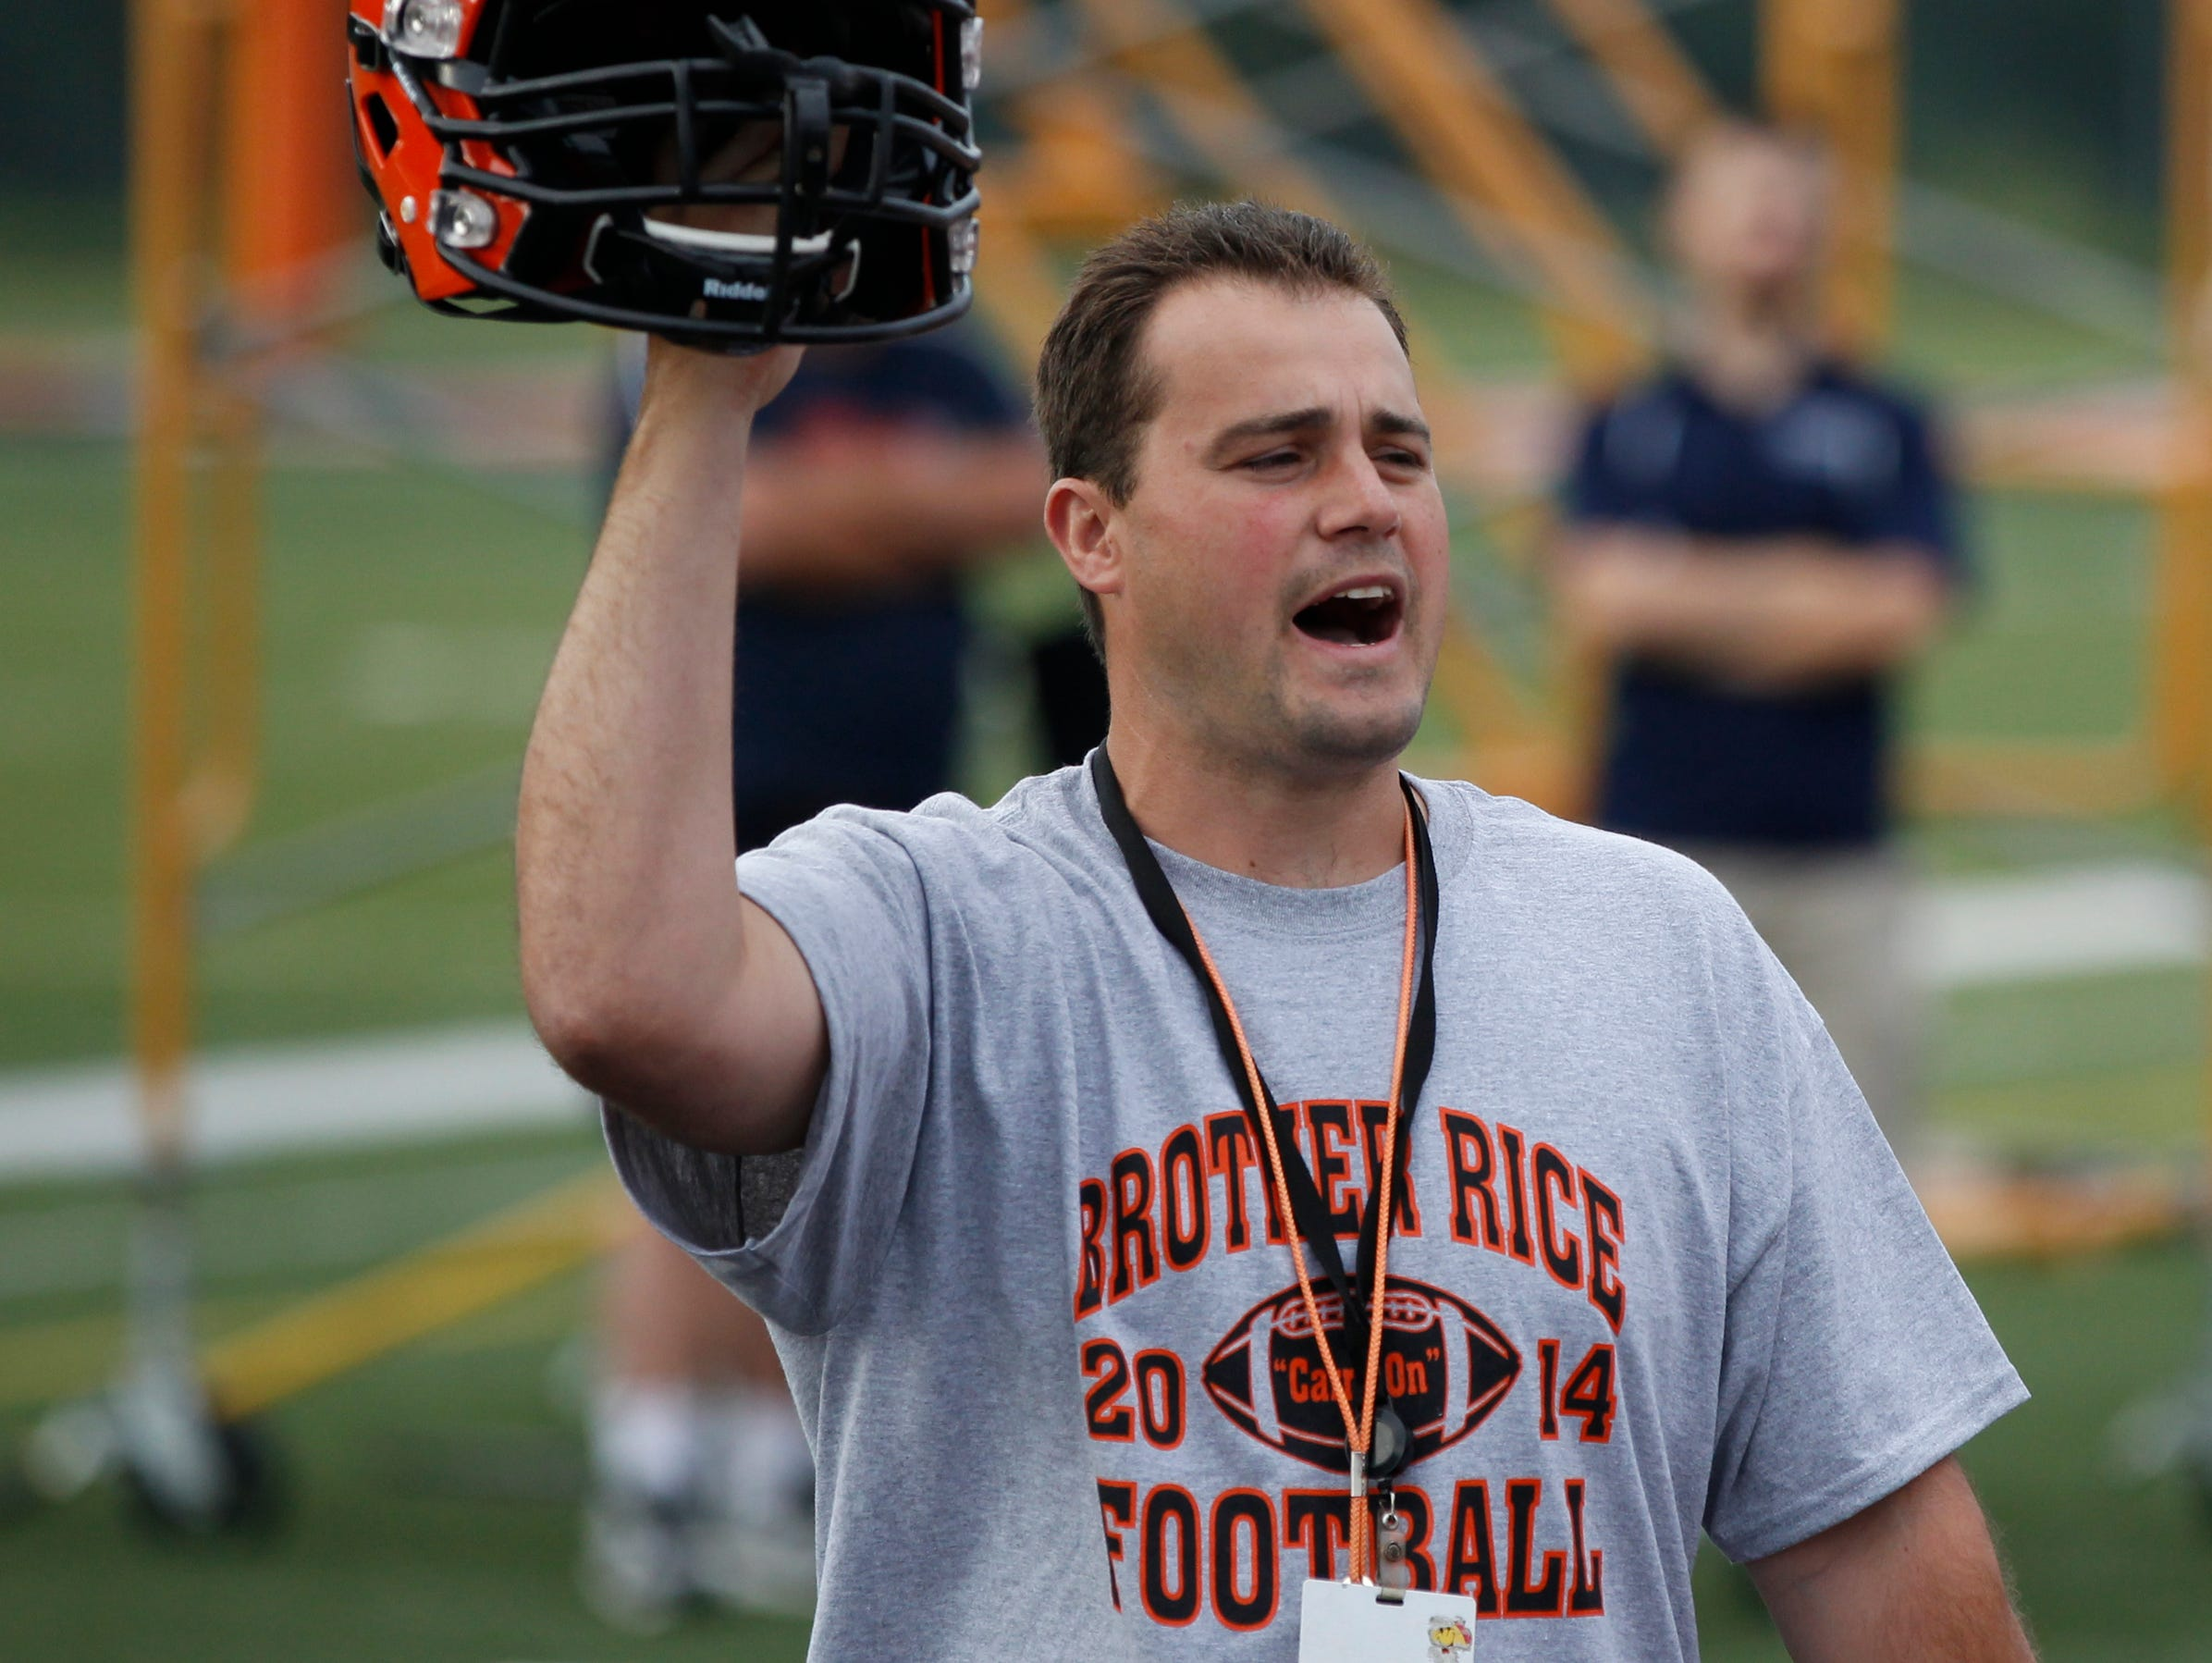 Birmingham Brother Rice football coach Dave Sofran works at practice Aug. 11, 2014.